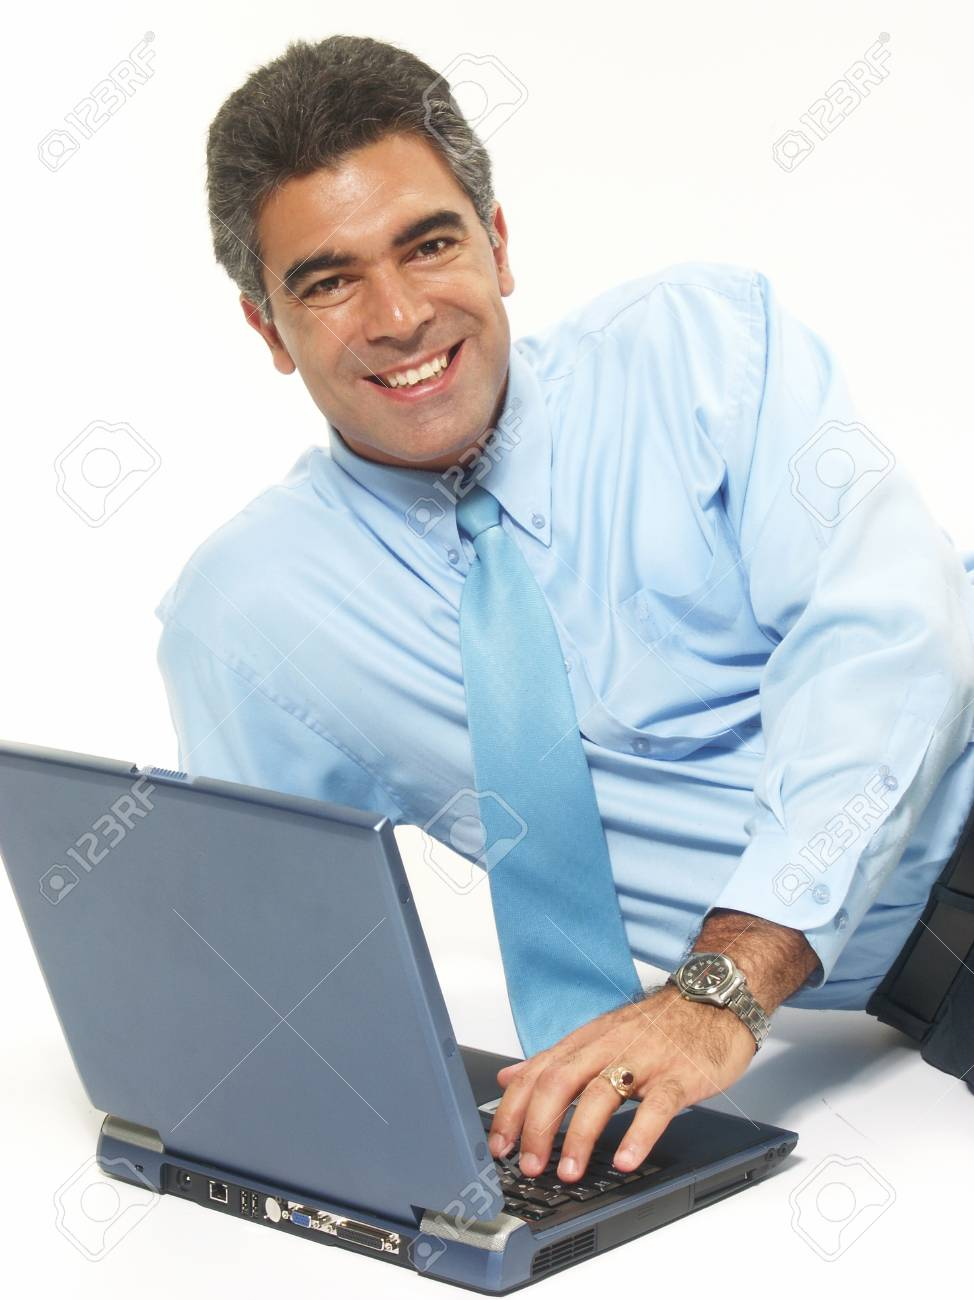 Businessman is using his laptop while sitting on the floor Stock Photo - 22521145